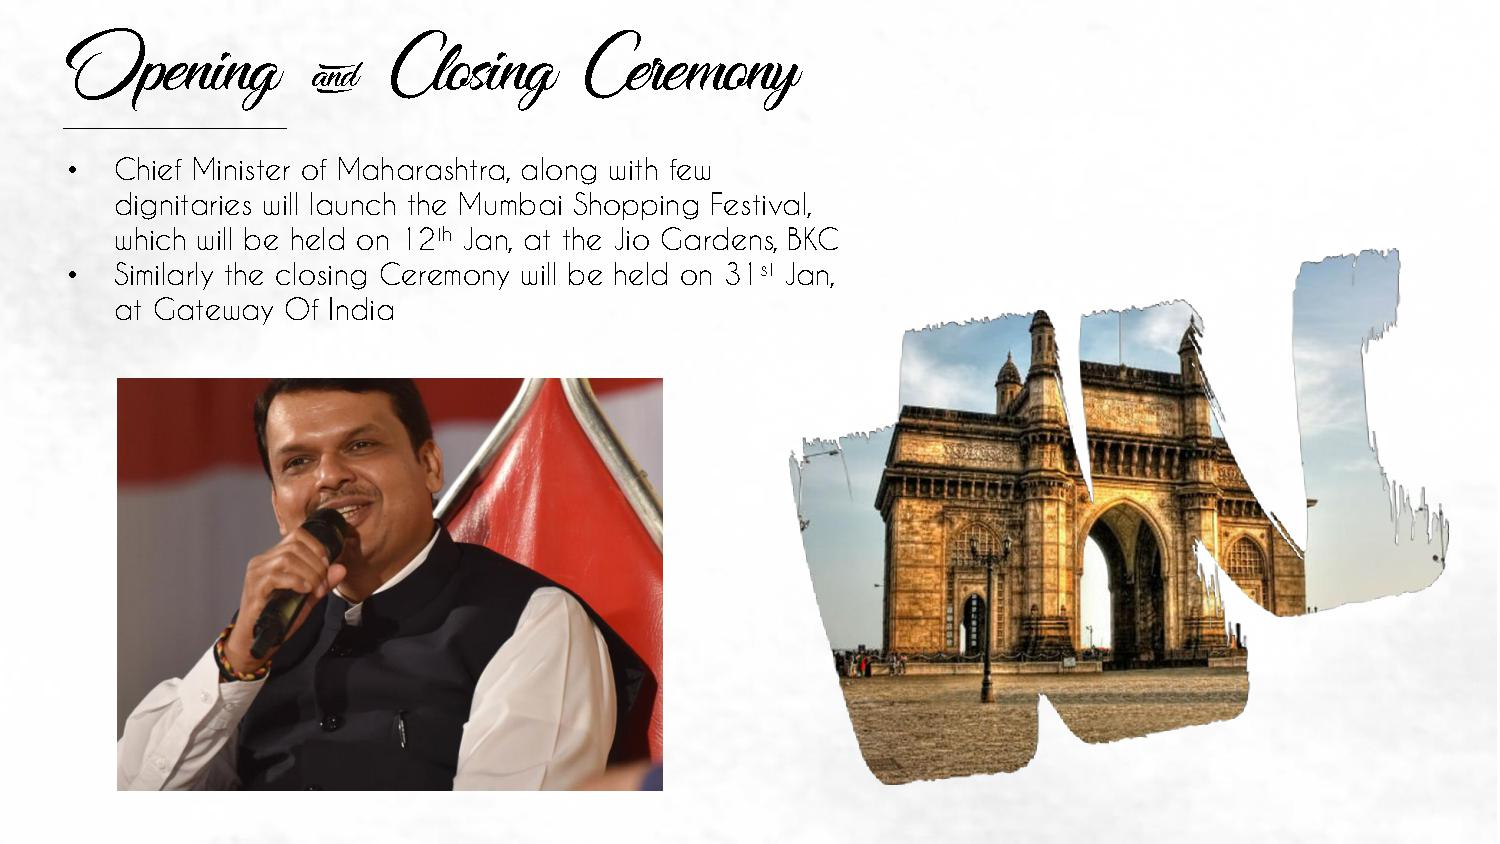 Opening & Closing Ceremony • Chief Minister of Maharashtra, along with few dignitaries will launch the Mumbai Shopping Festival, which will be held on 12th Jan, at the Jio Gardens, BKC • Similarly the closing Ceremony will be held on 31st Jan, at Gateway Of India